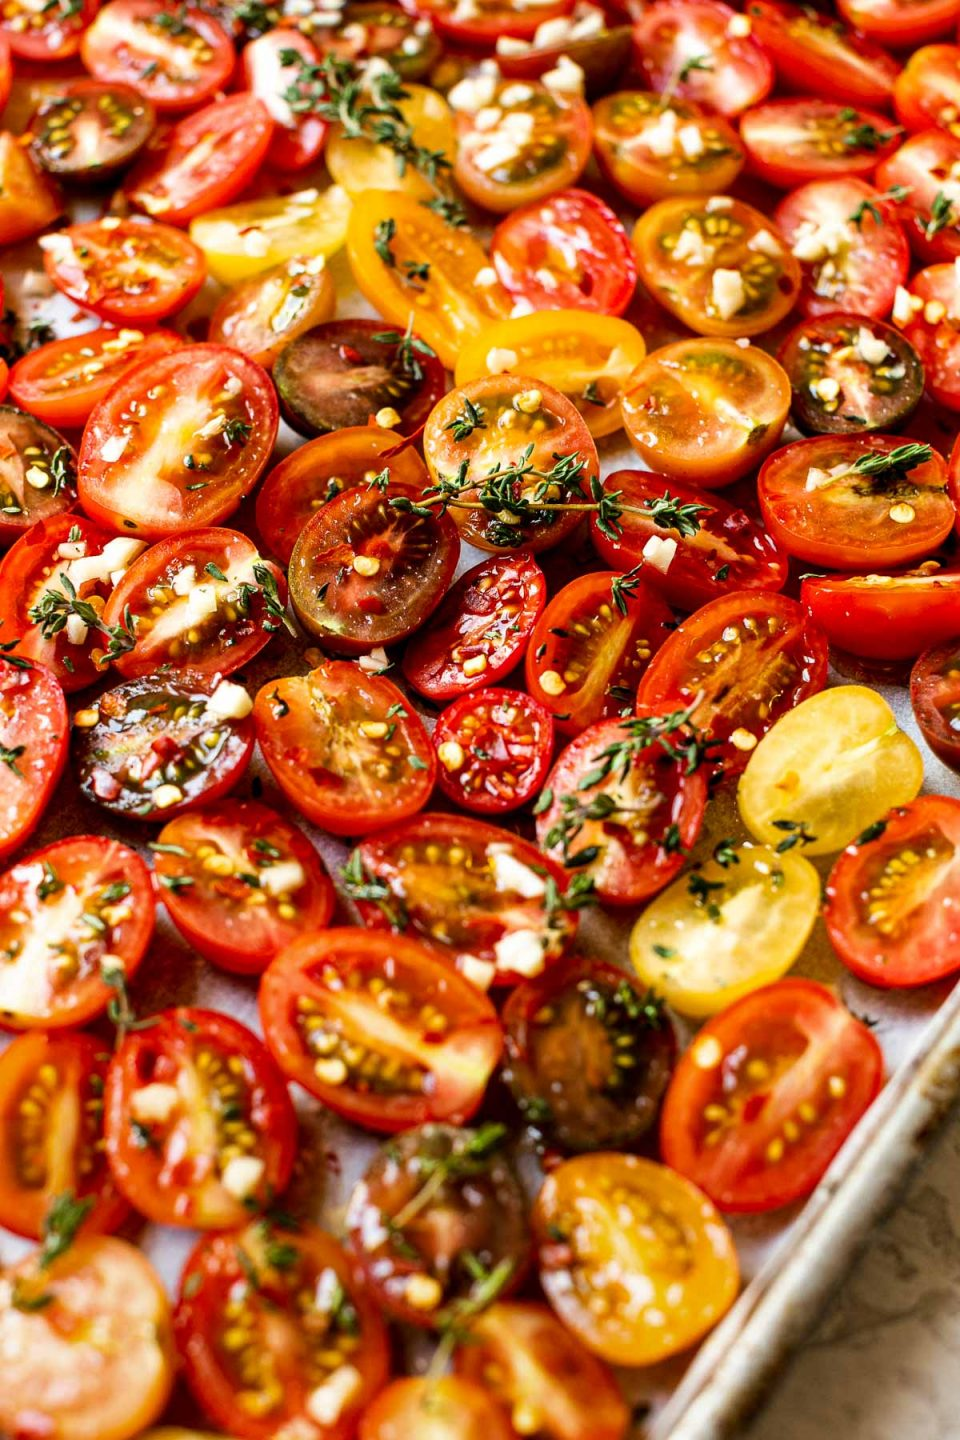 A close up & angled shot of raw cherry tomatoes arranged on a sheet pan lined with white parchment paper - sprinkled with fresh herbs & garlic ready to be slow roasted.